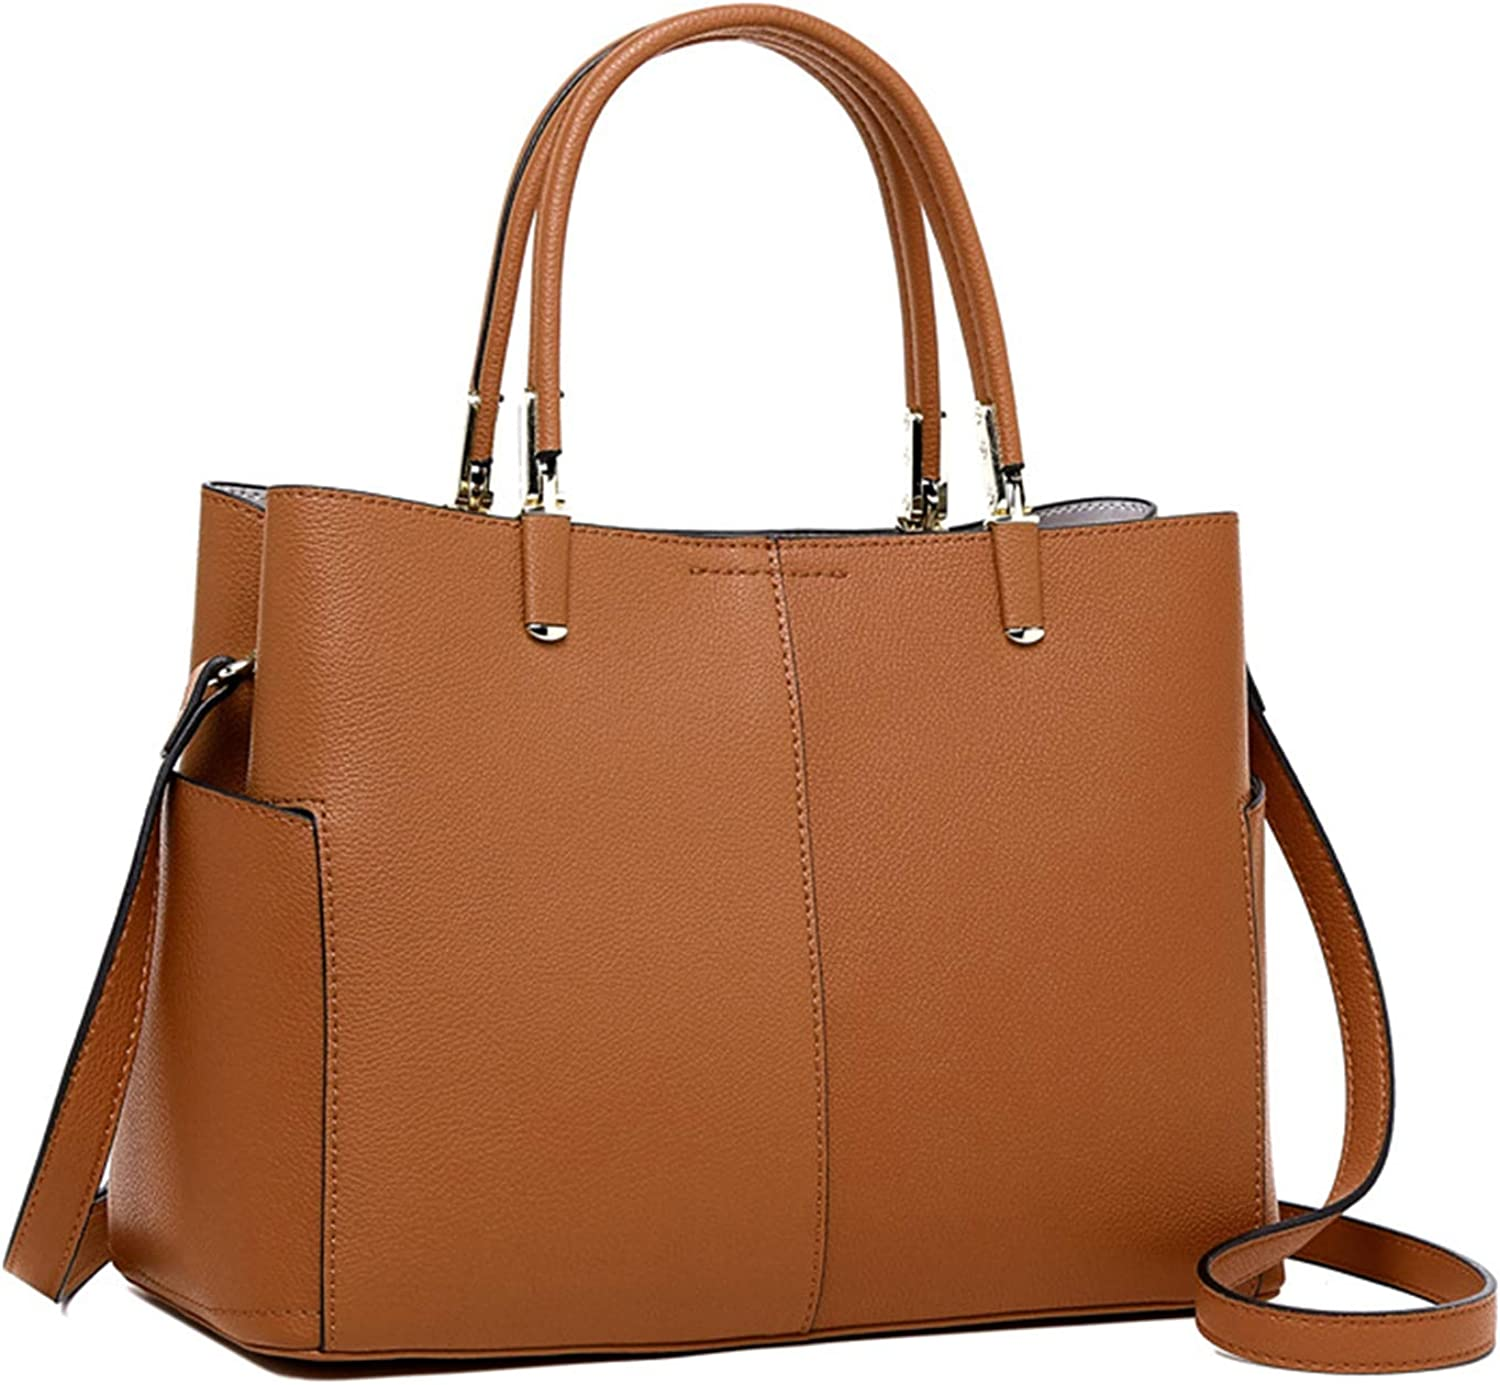 NOTAG Leather Handbags for Women Large Shoulder Bag Casual Tote Bag Ladies Purses Travel Crossbody Bags